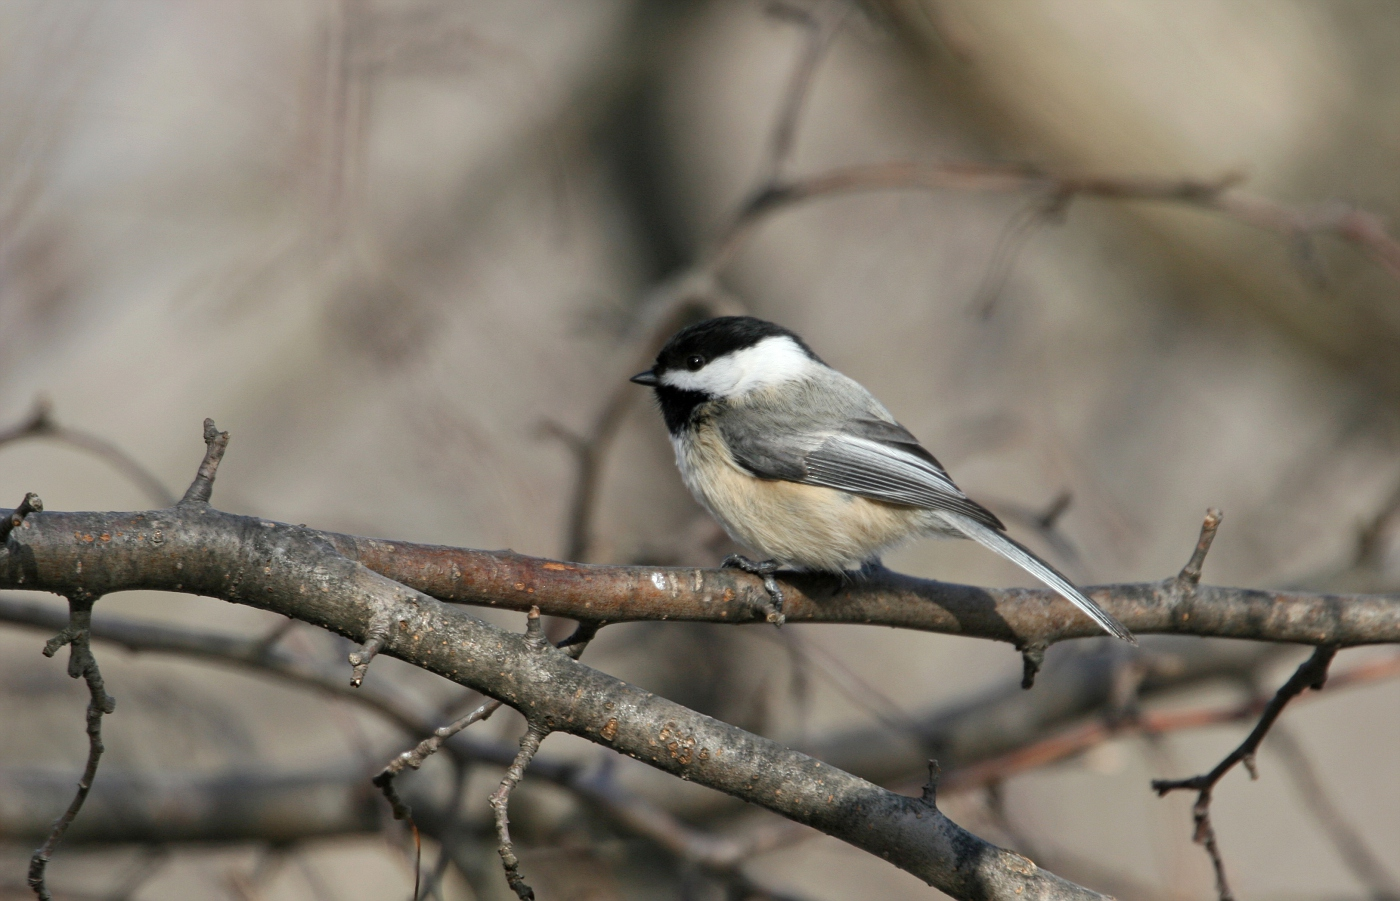 Black-capped Chickadee #3